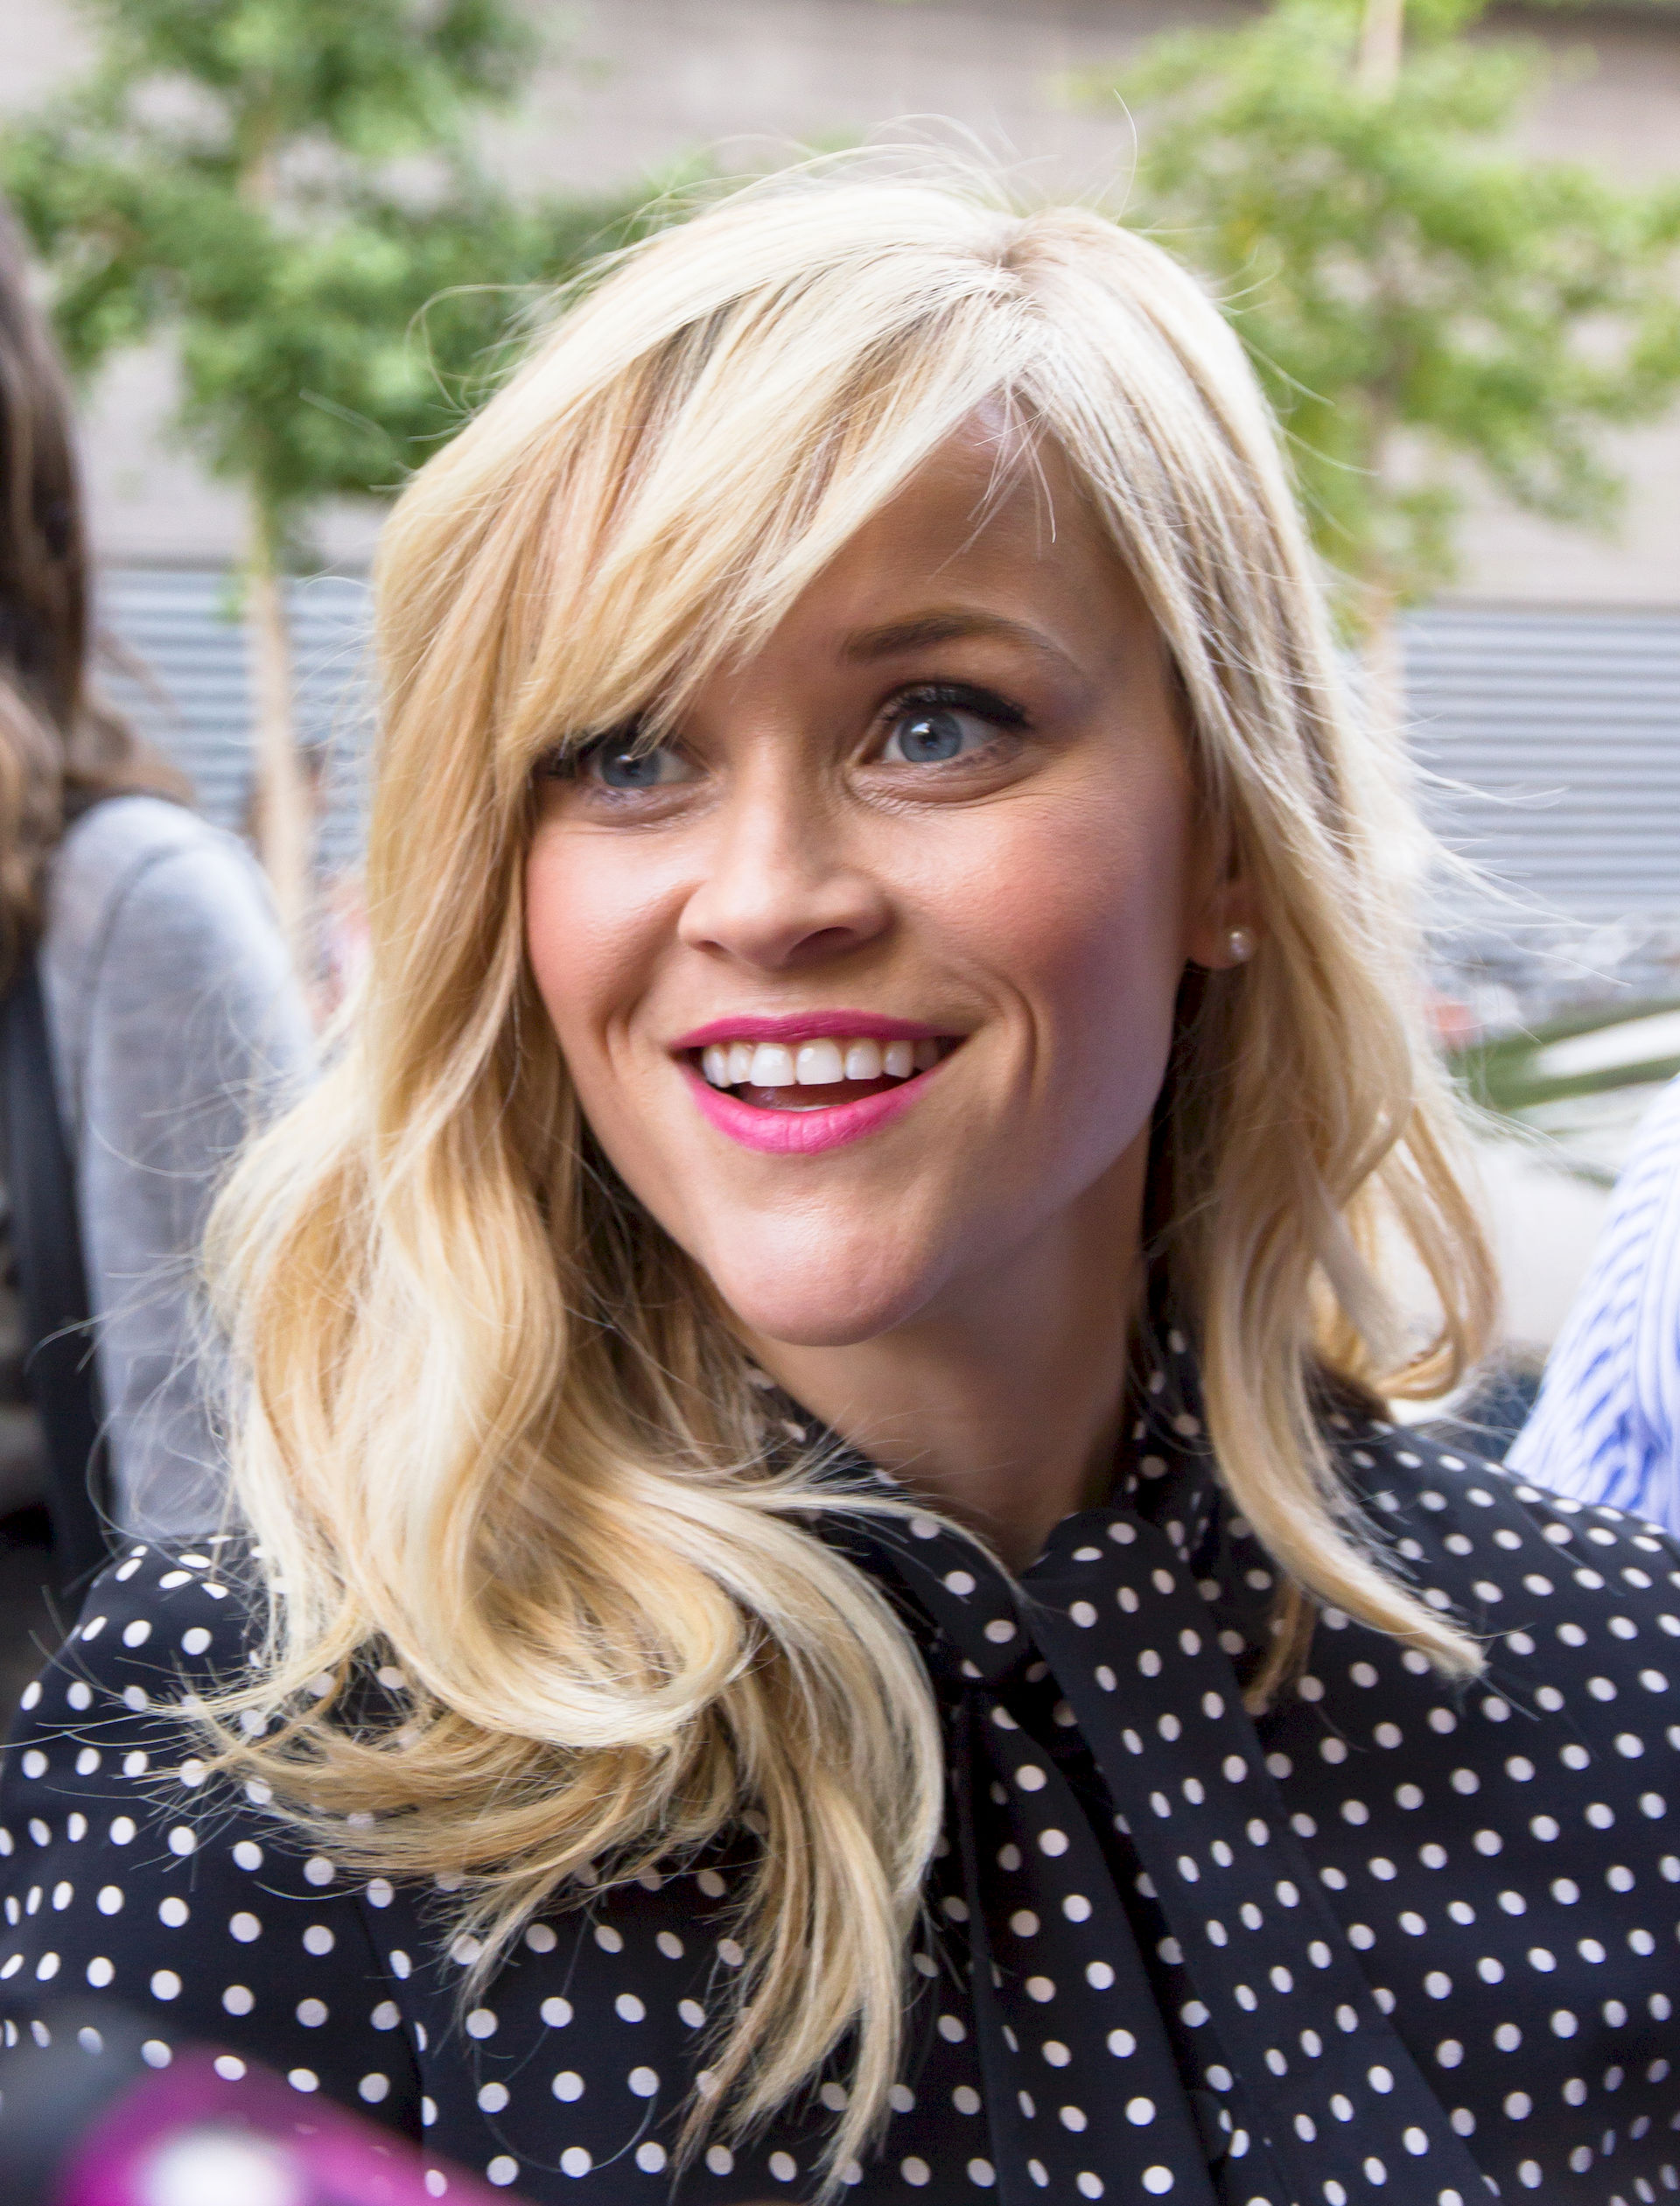 Photo of Reese Witherspoon: American film actress and producer